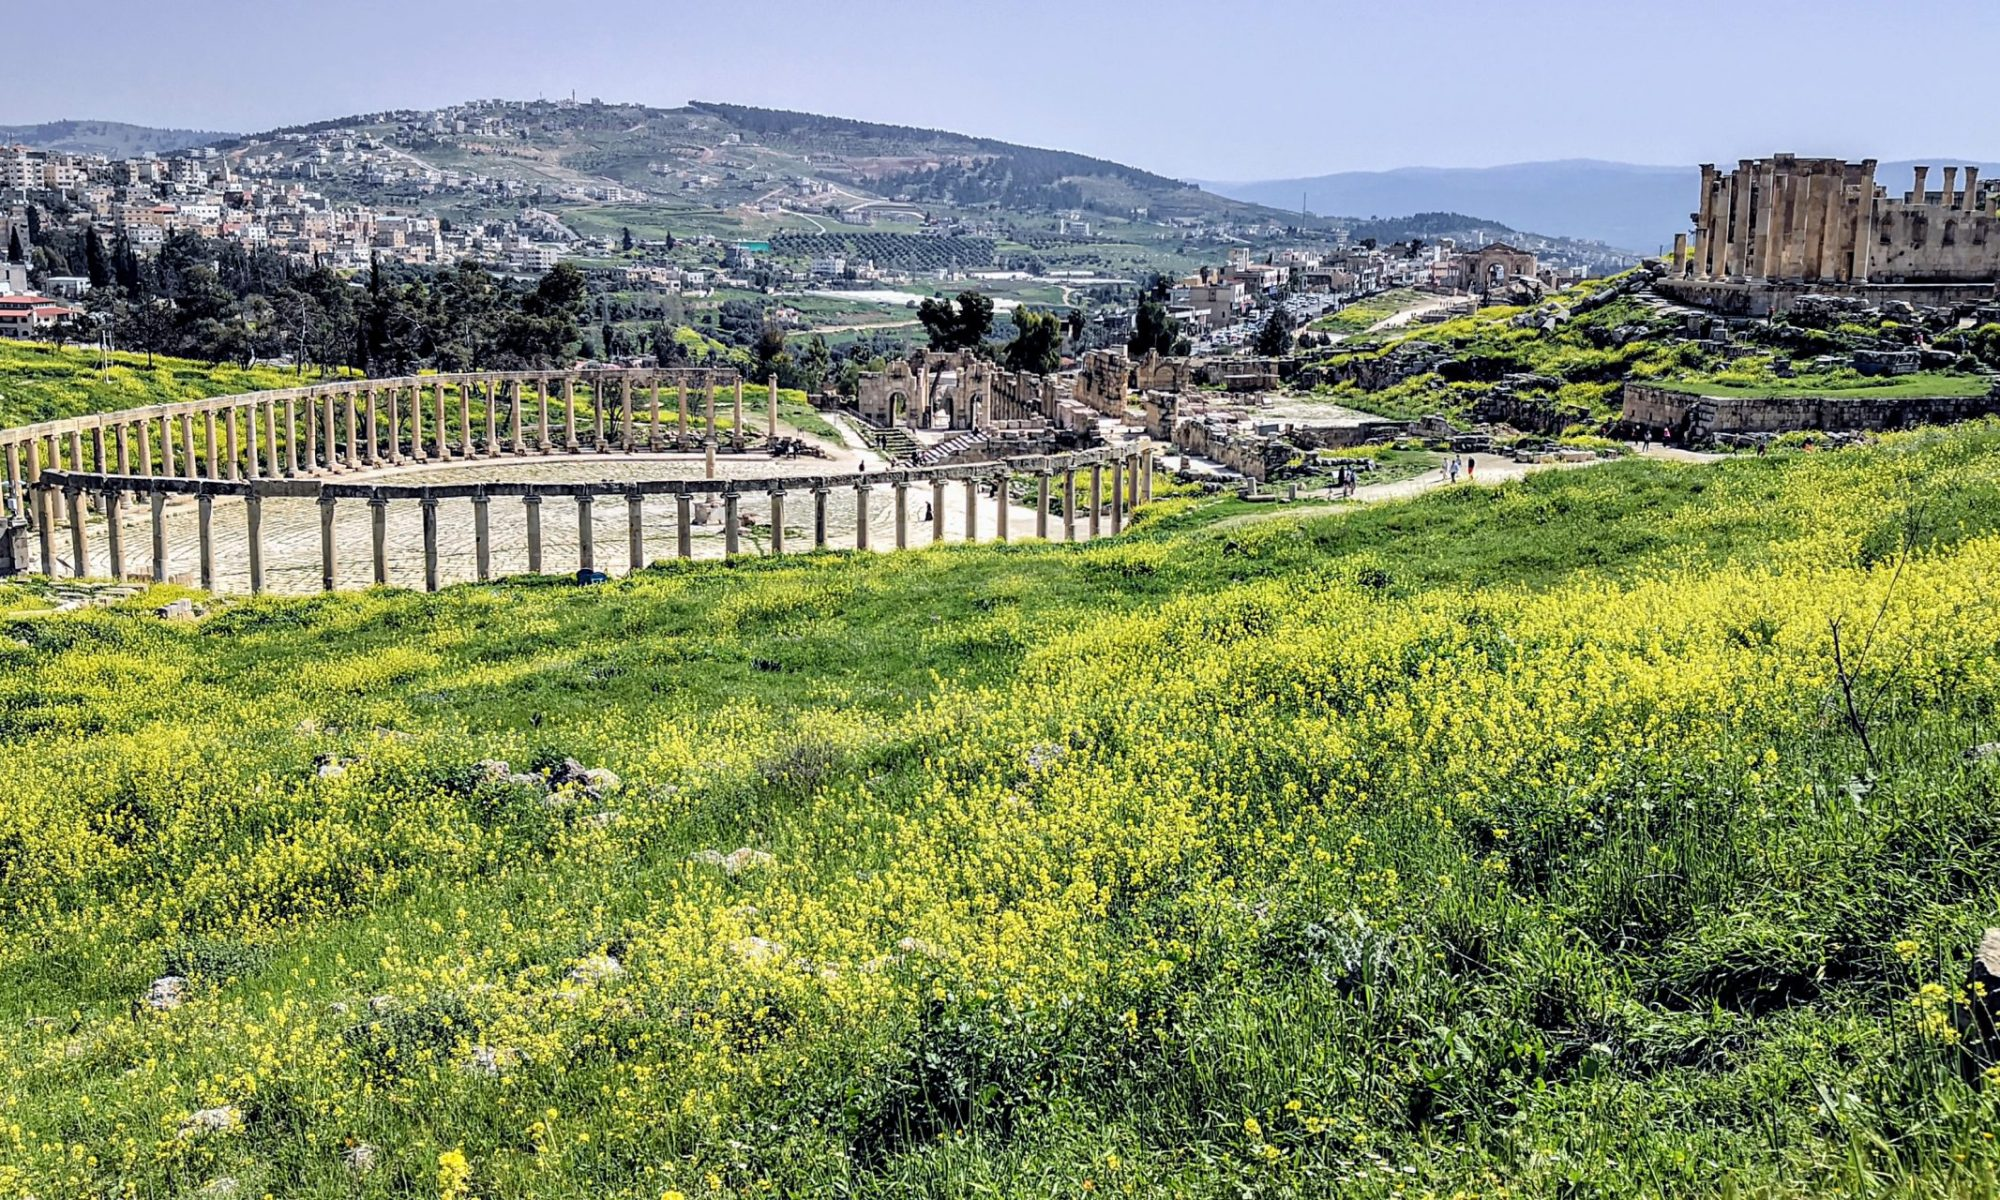 Ruins of the oval plaza with pillars surrounded by green and yellow flowers in the spring time